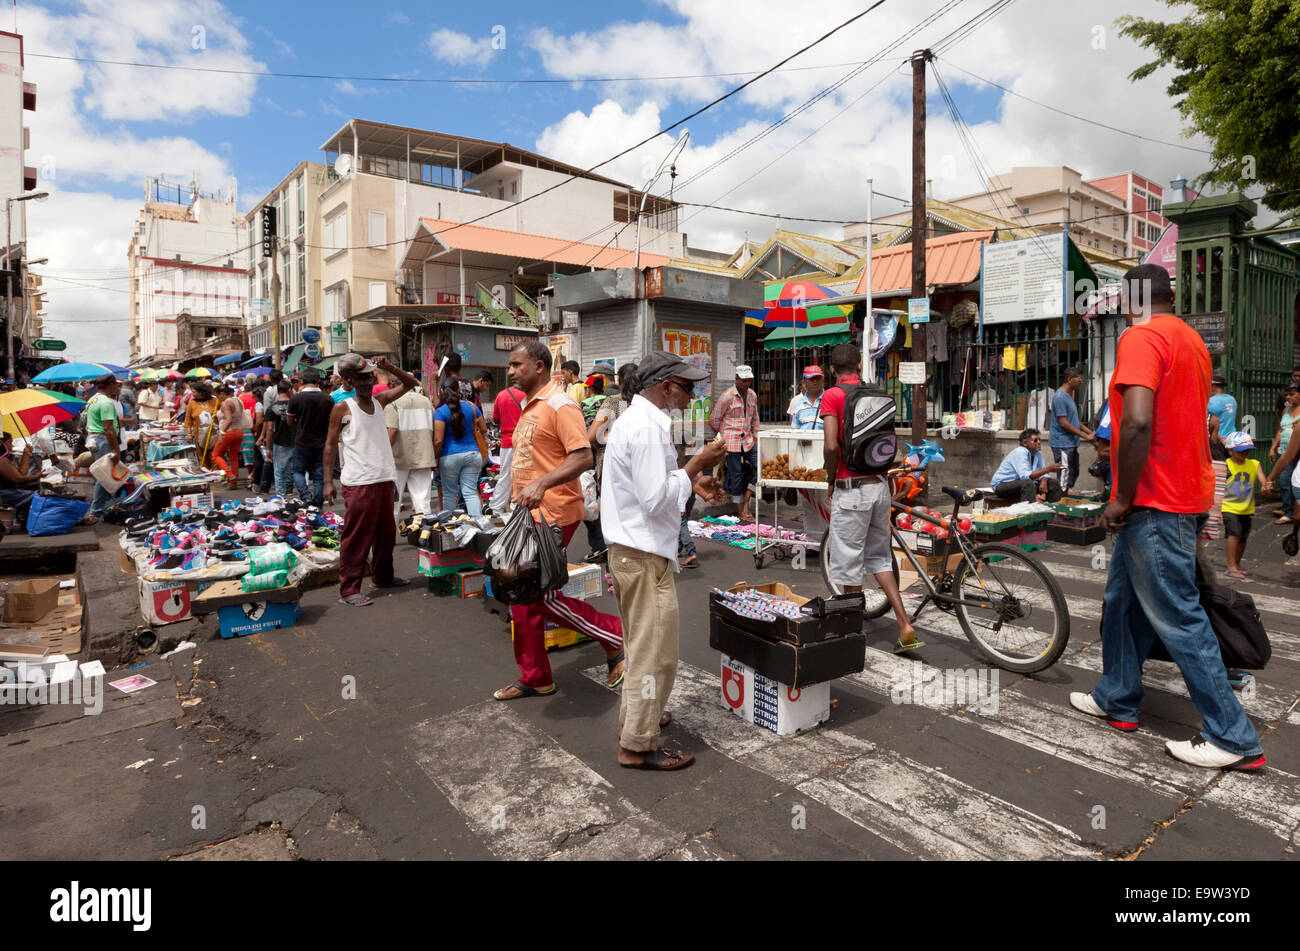 Mauritius port louis local mauritian people shopping at the stock photo royalty free image - Mauritius market port louis ...